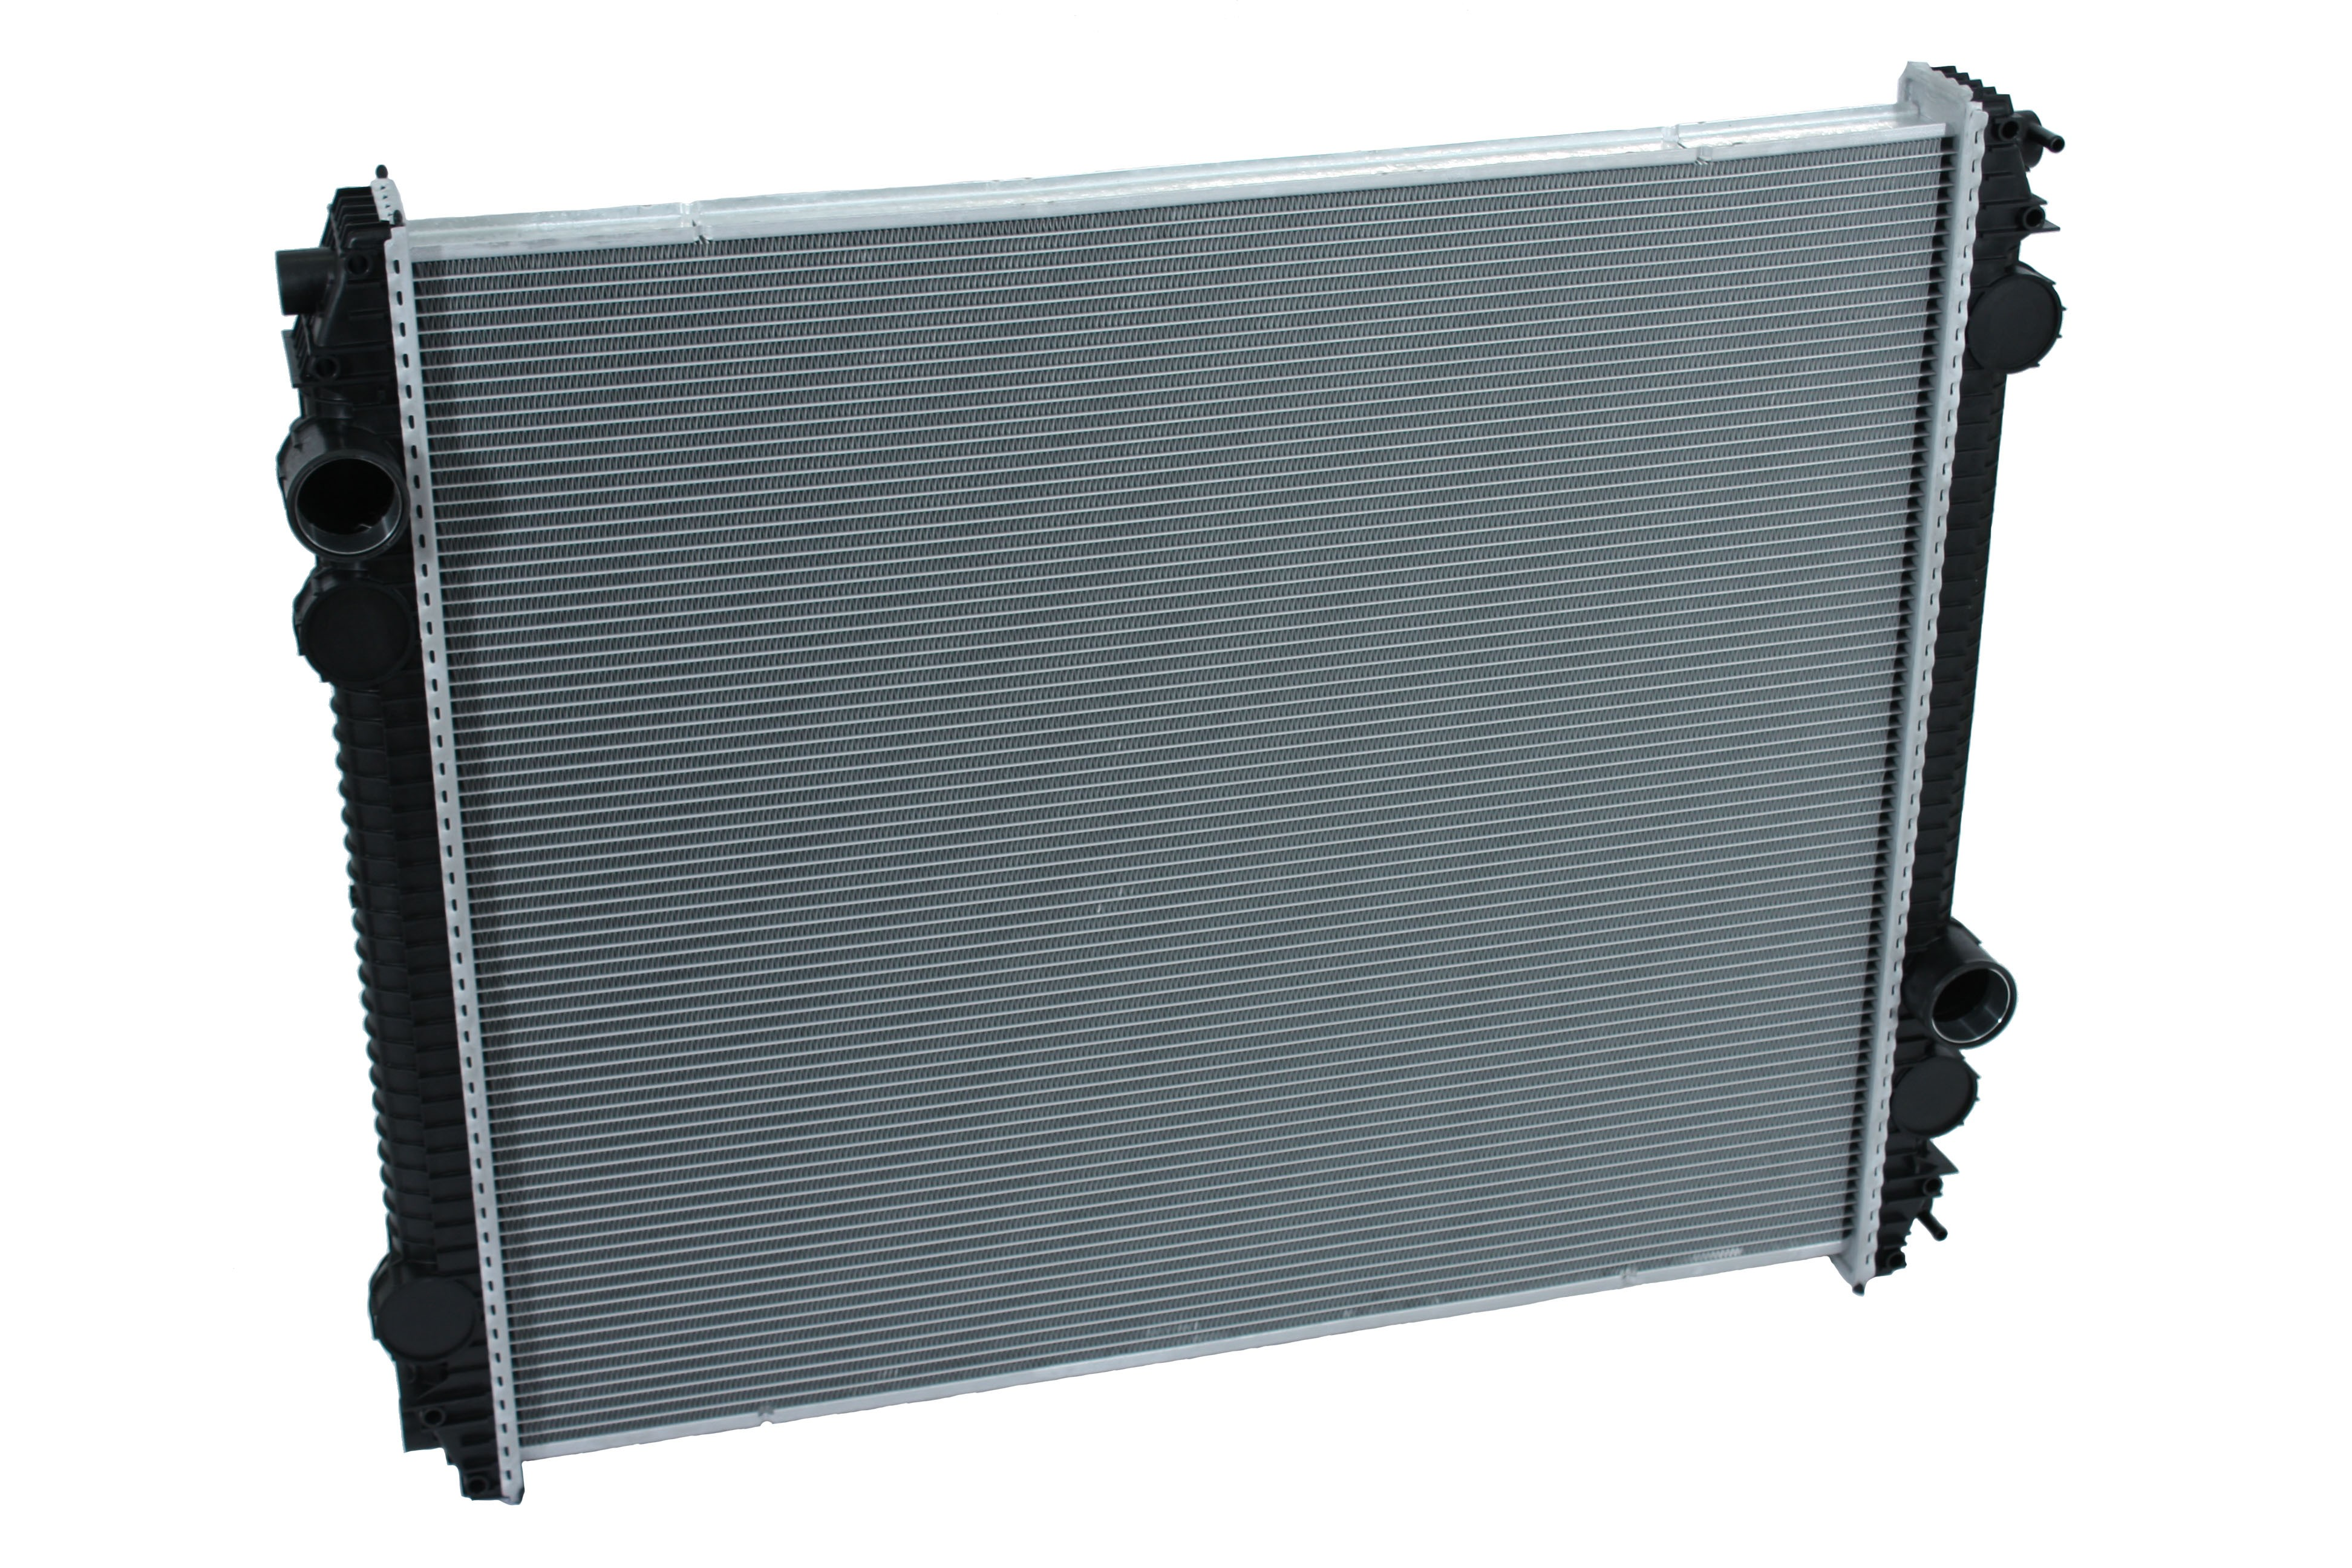 Freightliner 1997-2006 Century Columbia Models Radiator Angled View.